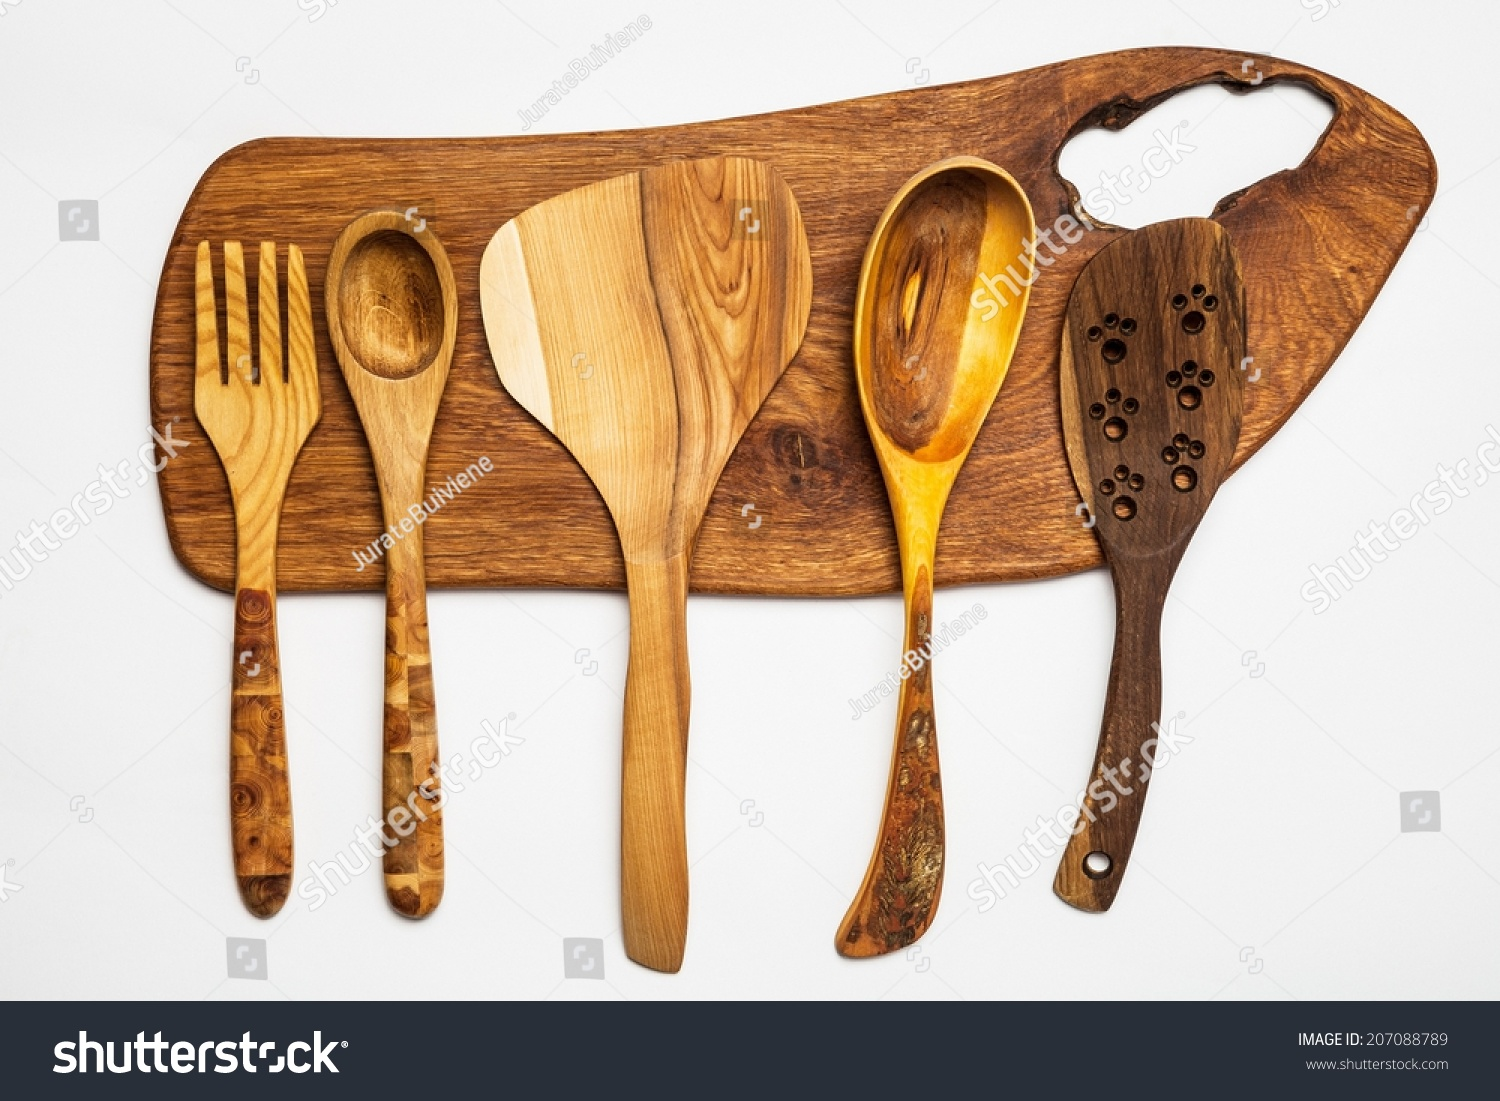 Wood Kitchen Equipment : Kitchen equipment wooden cutting board tools stock photo